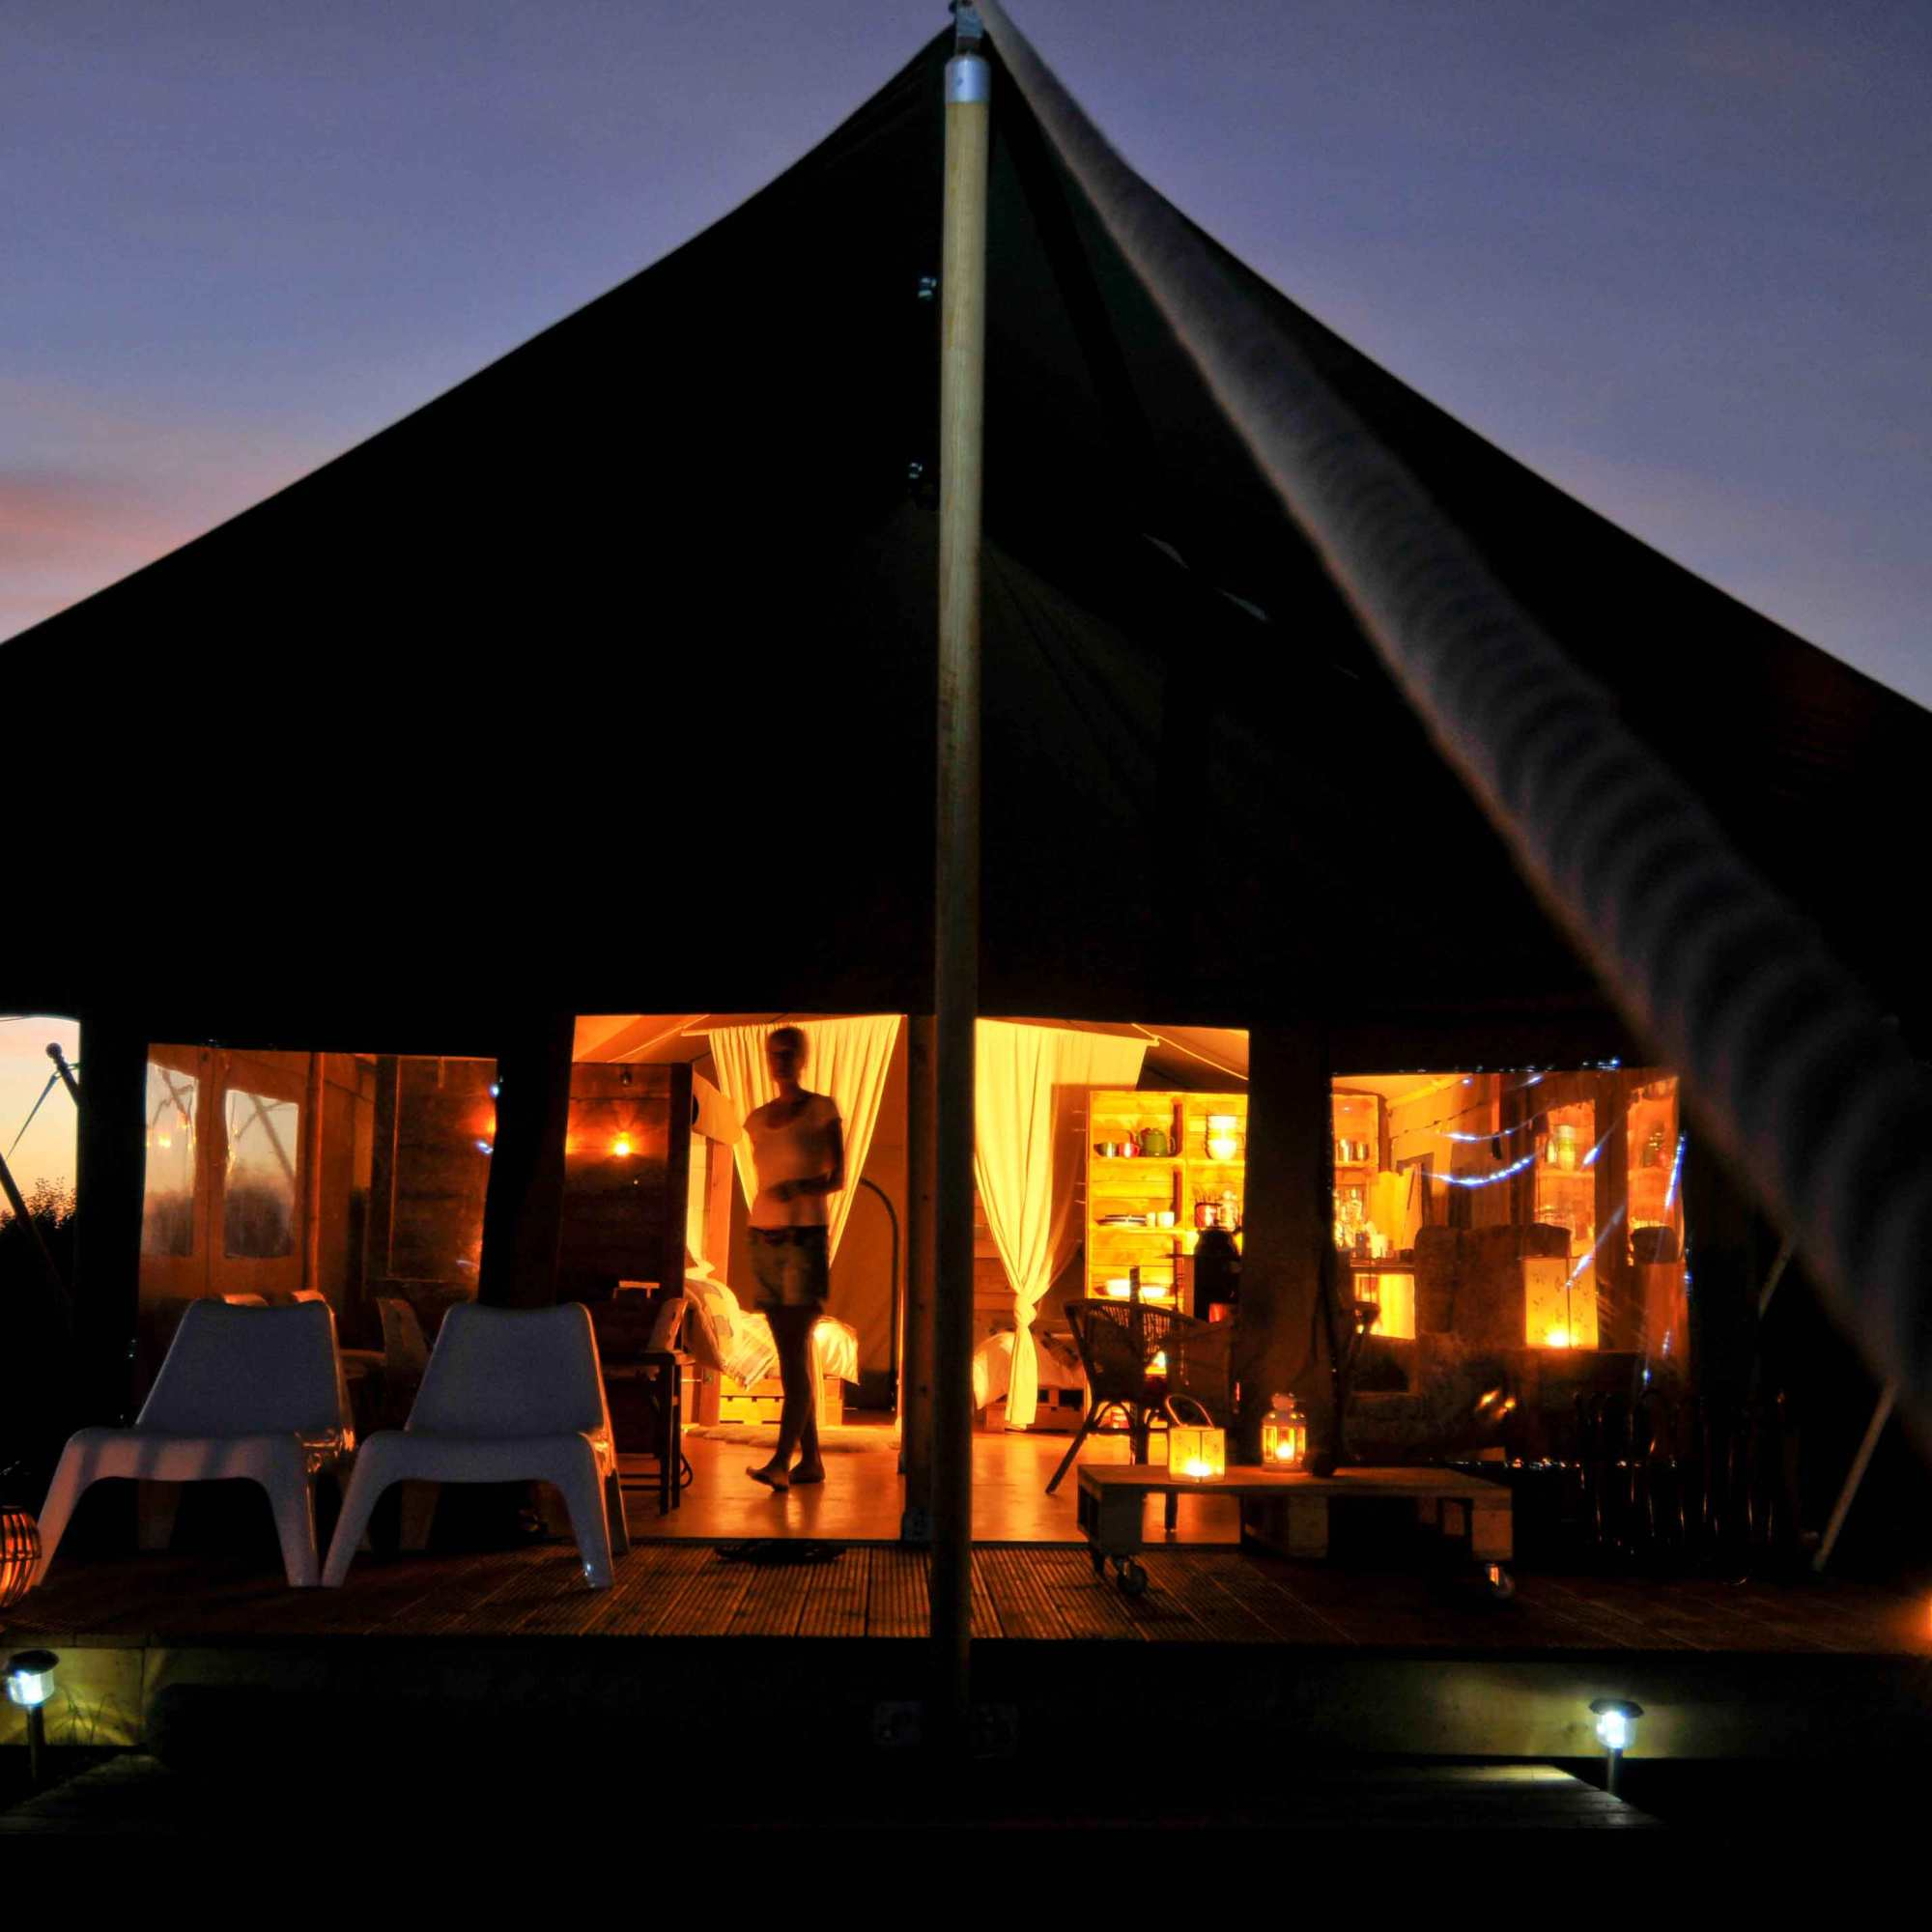 a safari tent at night with lanterns and sunset glow